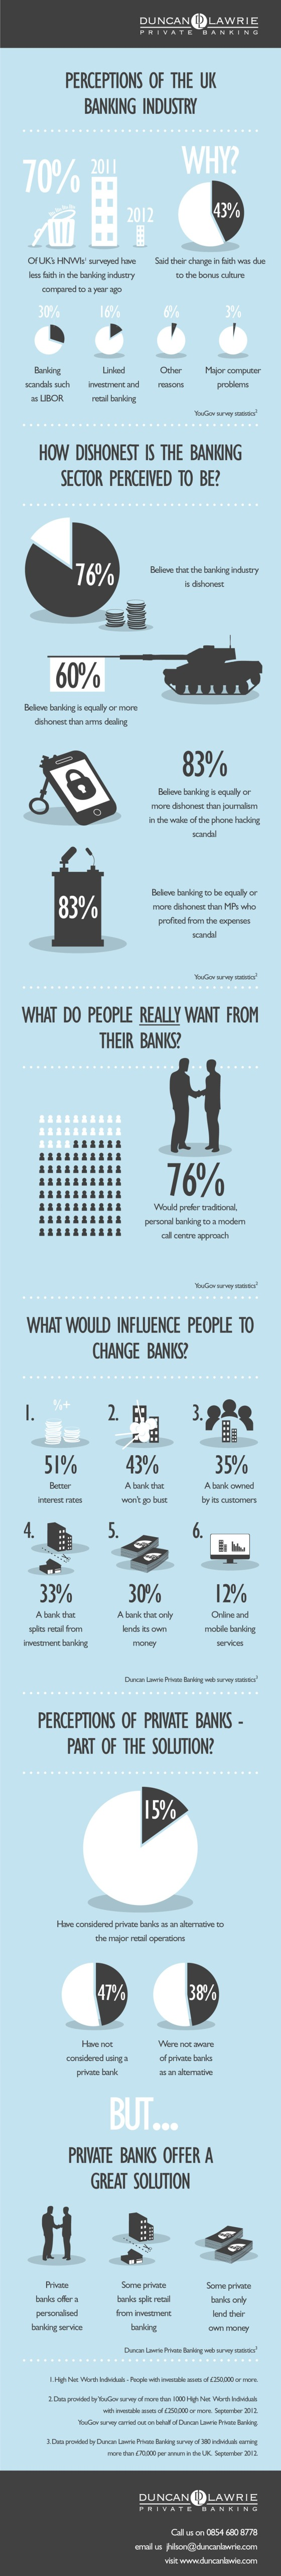 Perceptions of the UK Banking Industry [Infographic]